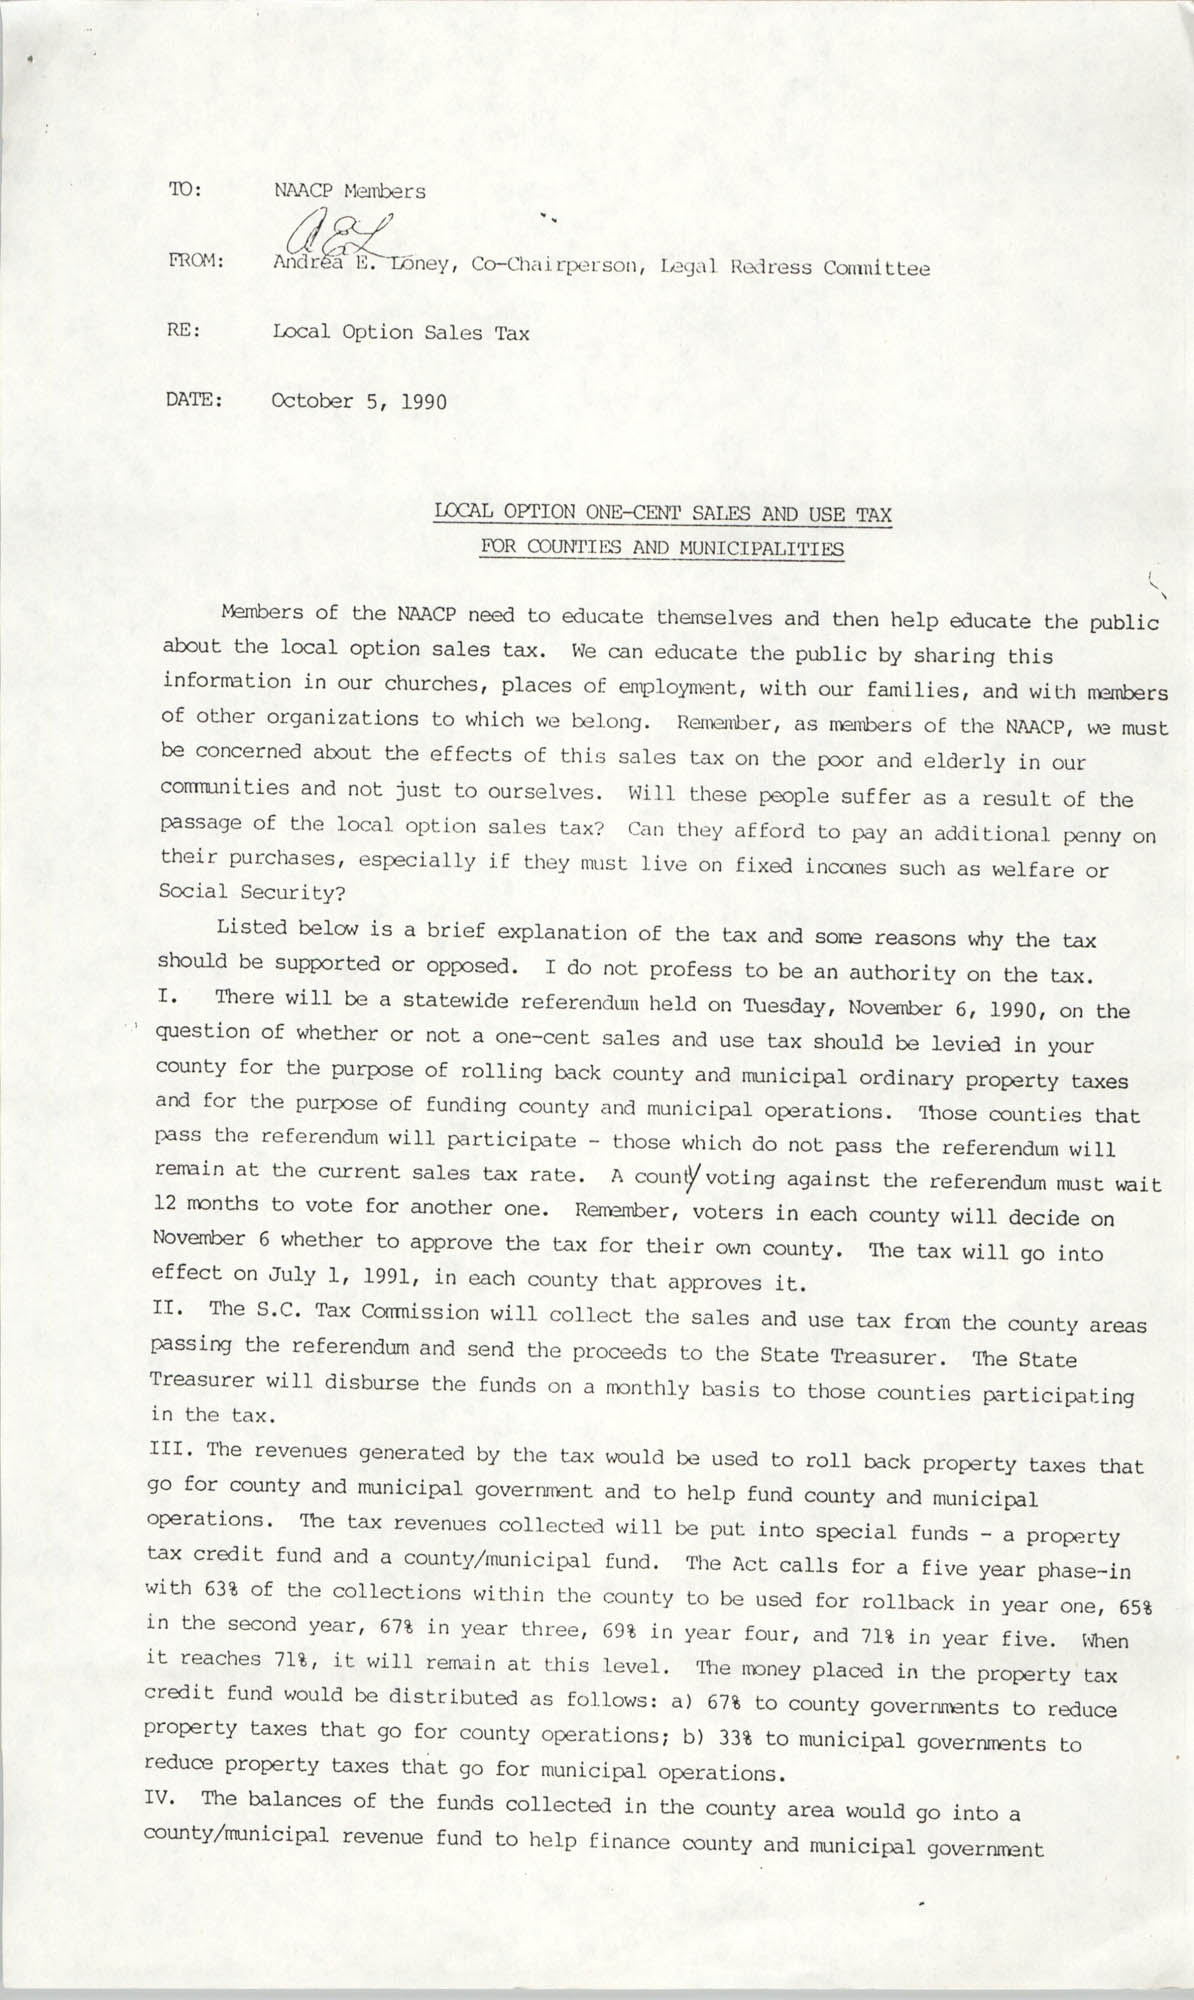 NAACP Memorandum, October 5, 1990